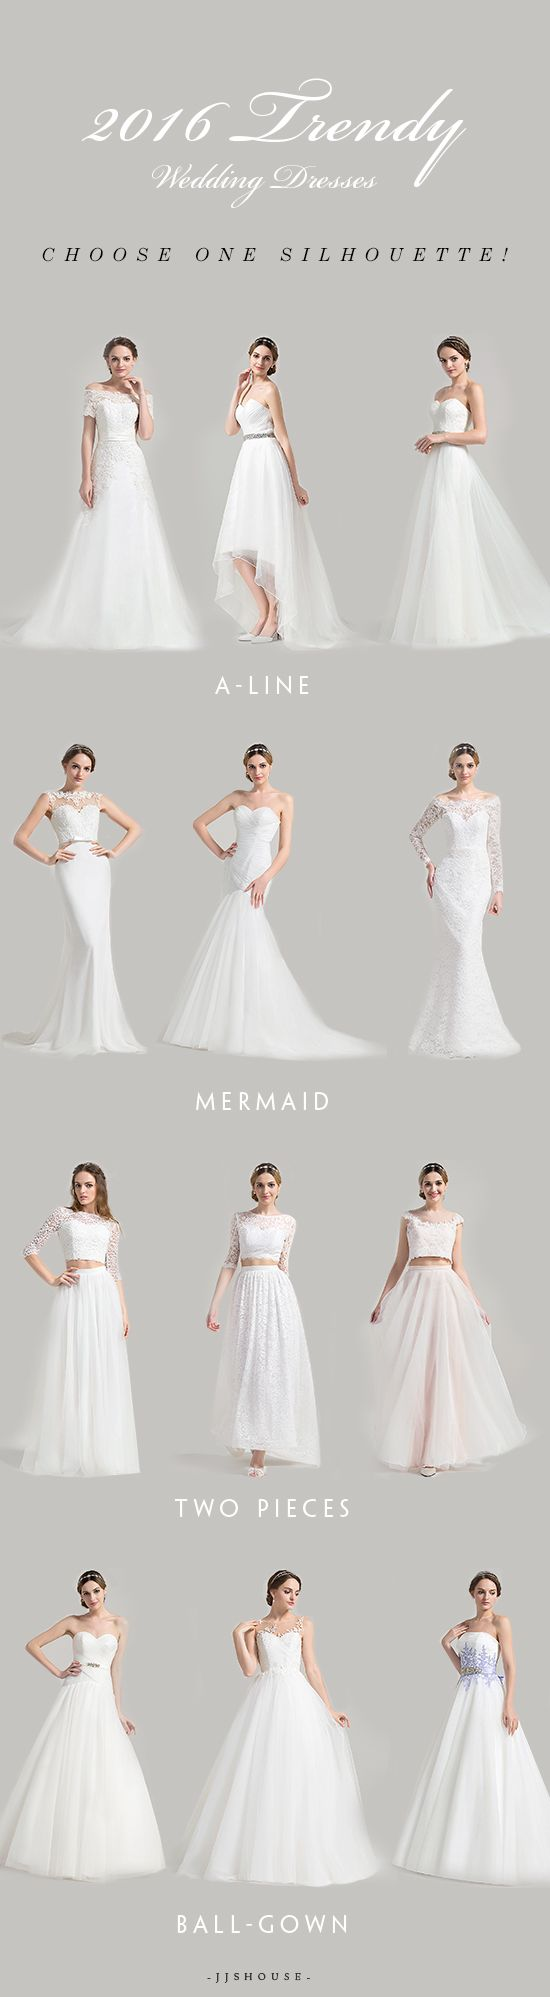 2016 Trendy Wedding Dresses,Choose one Silhouette for your bride ...